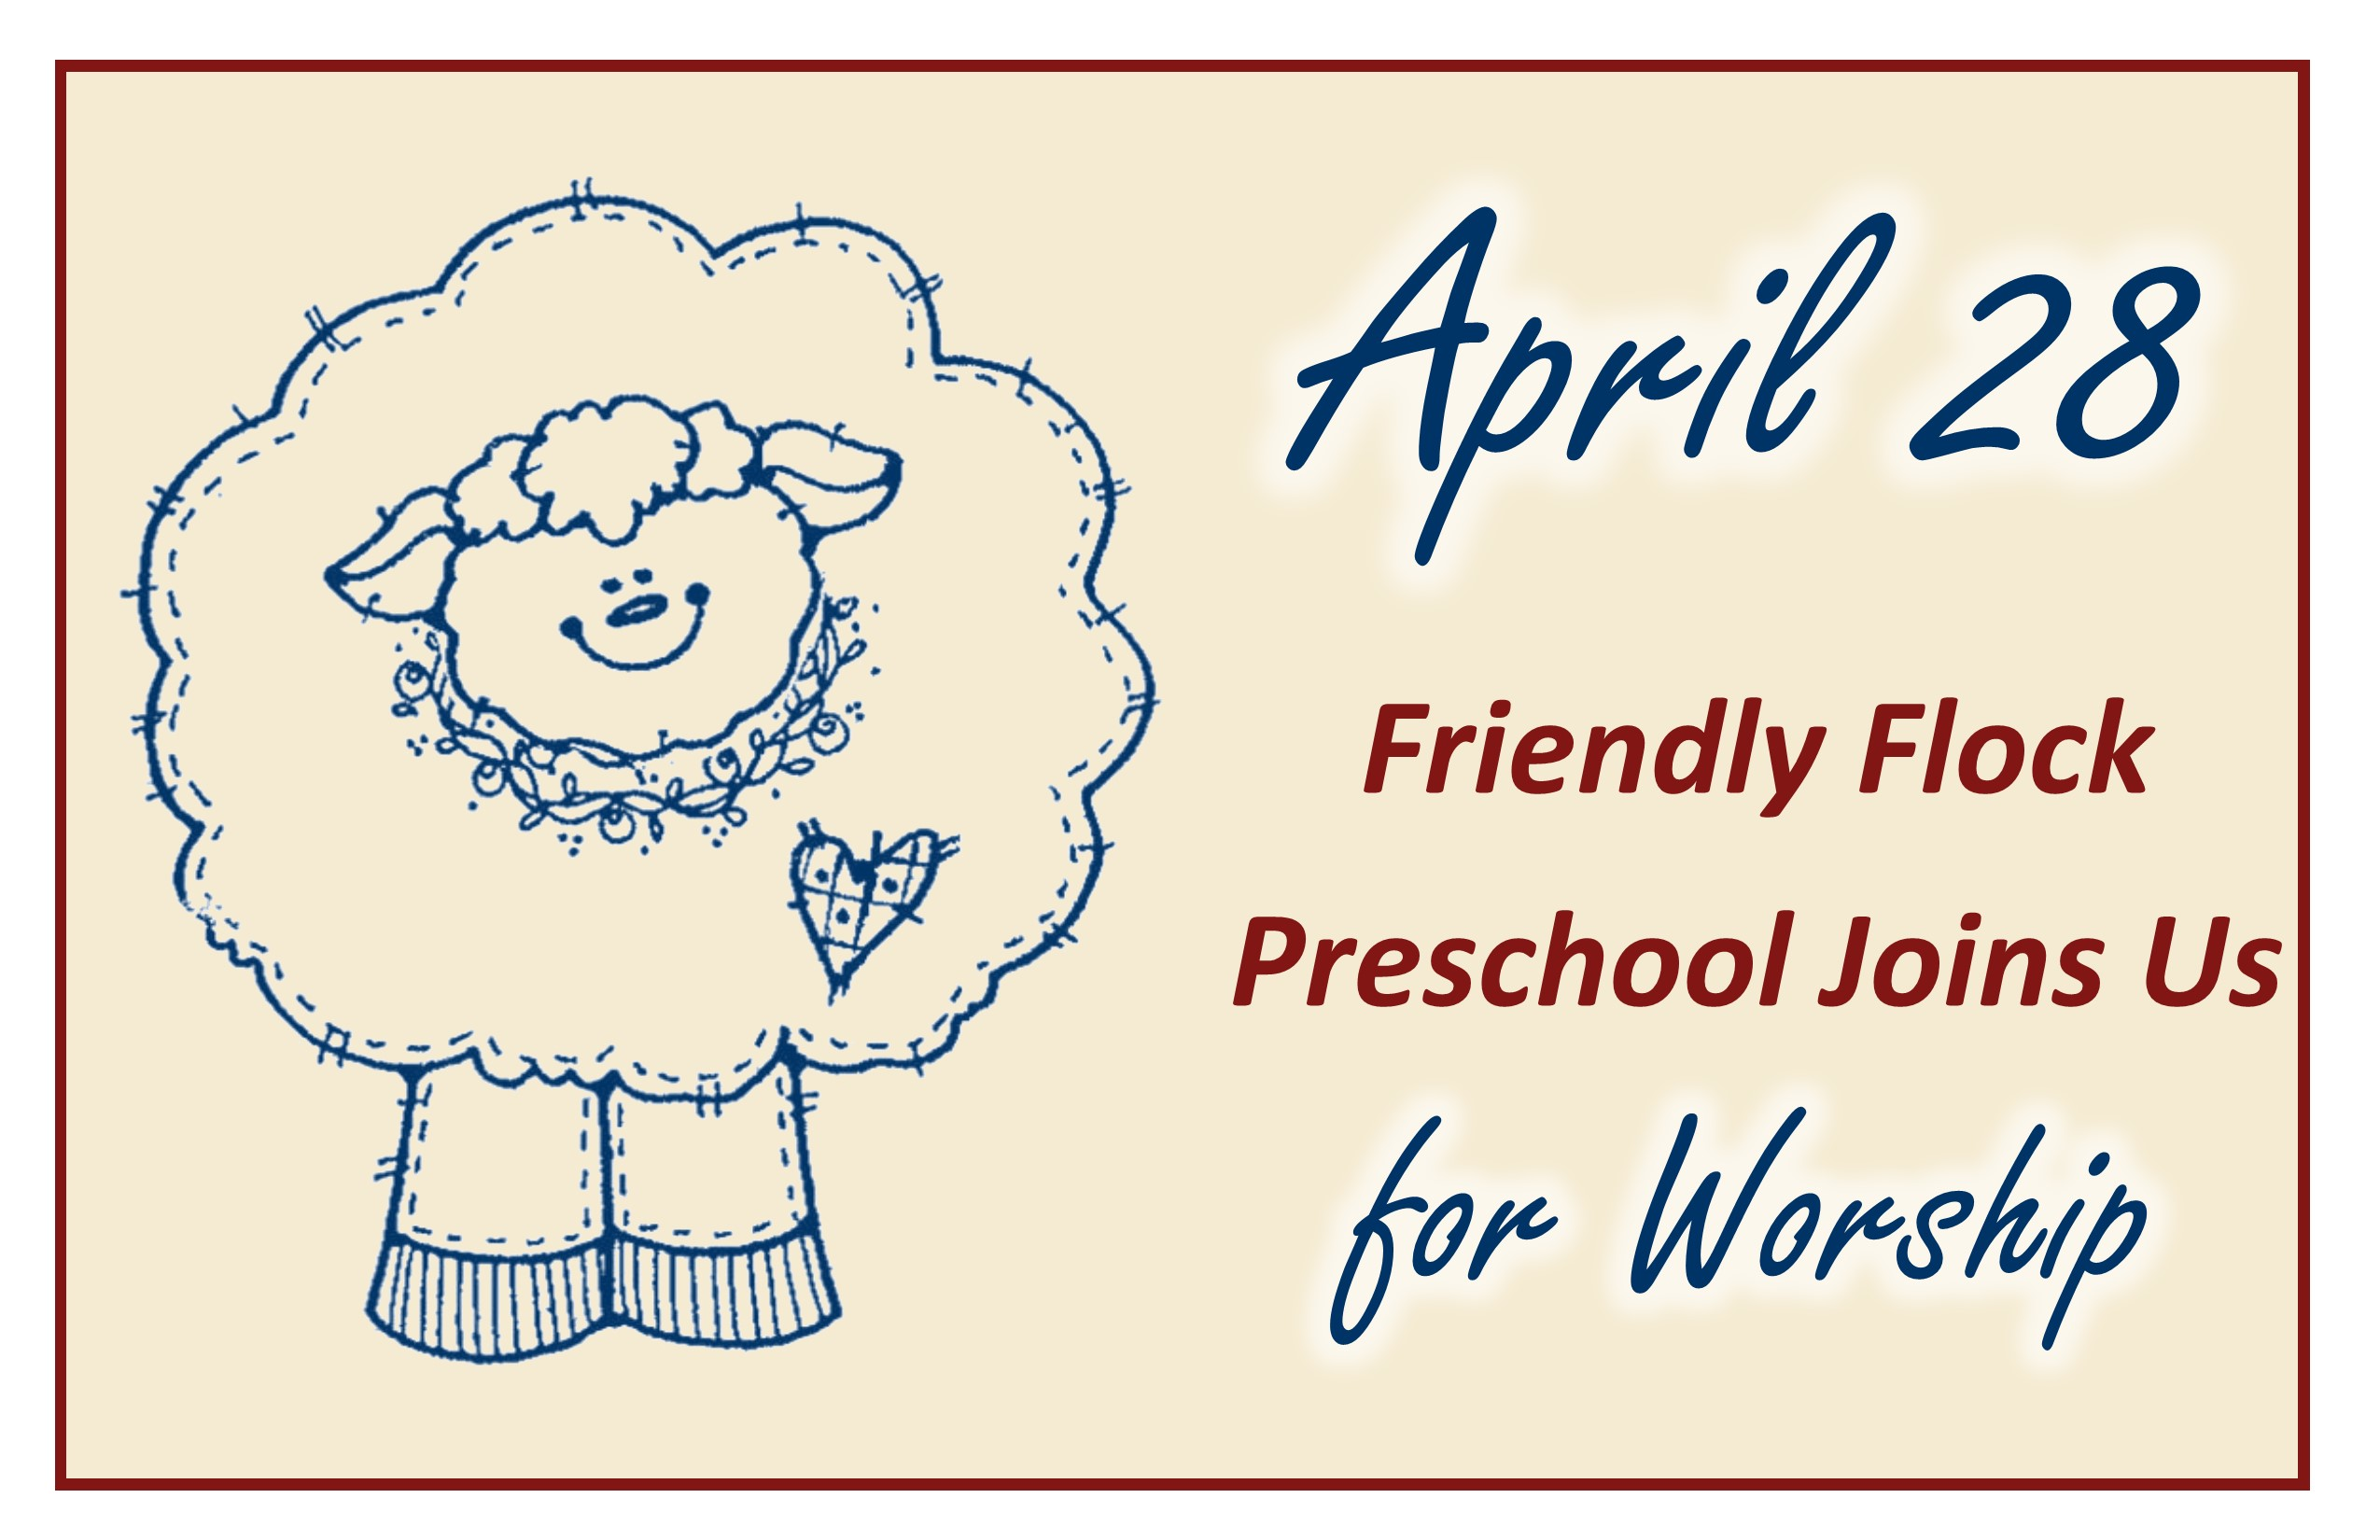 04 28 2019 Friendly Flock Sunday Poster